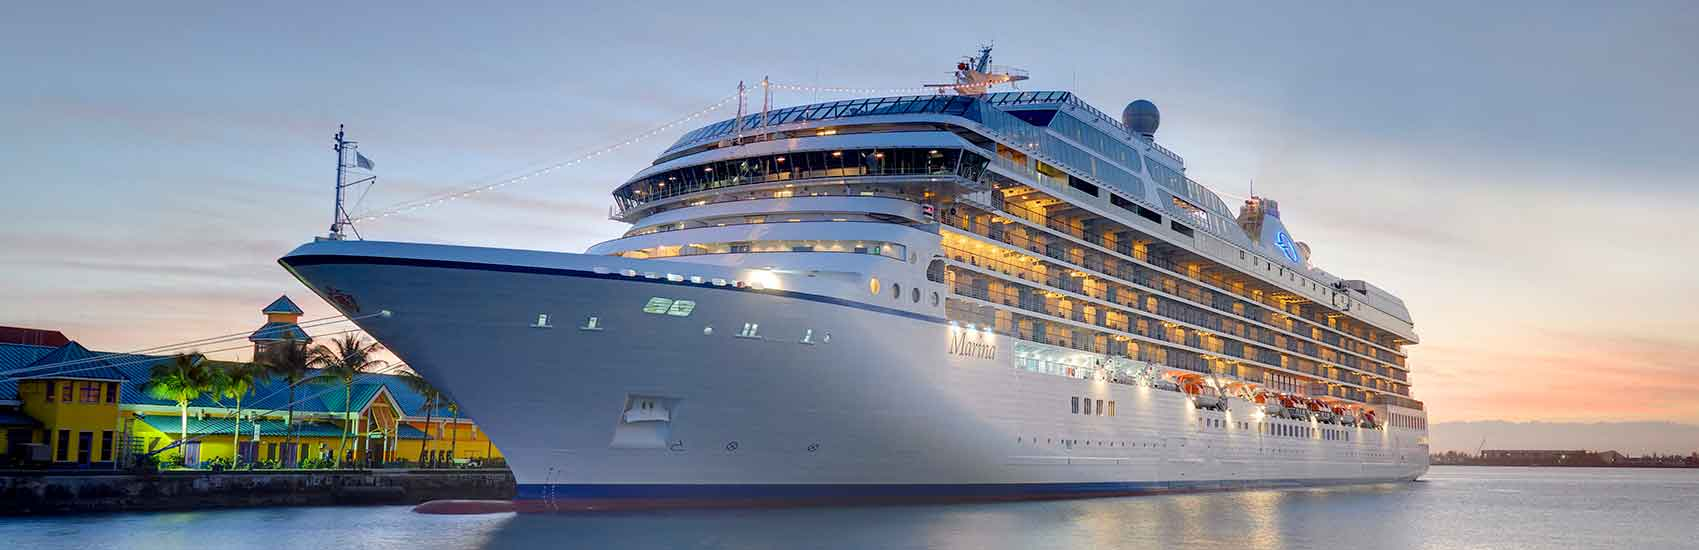 Direct Deal with Oceania Cruises